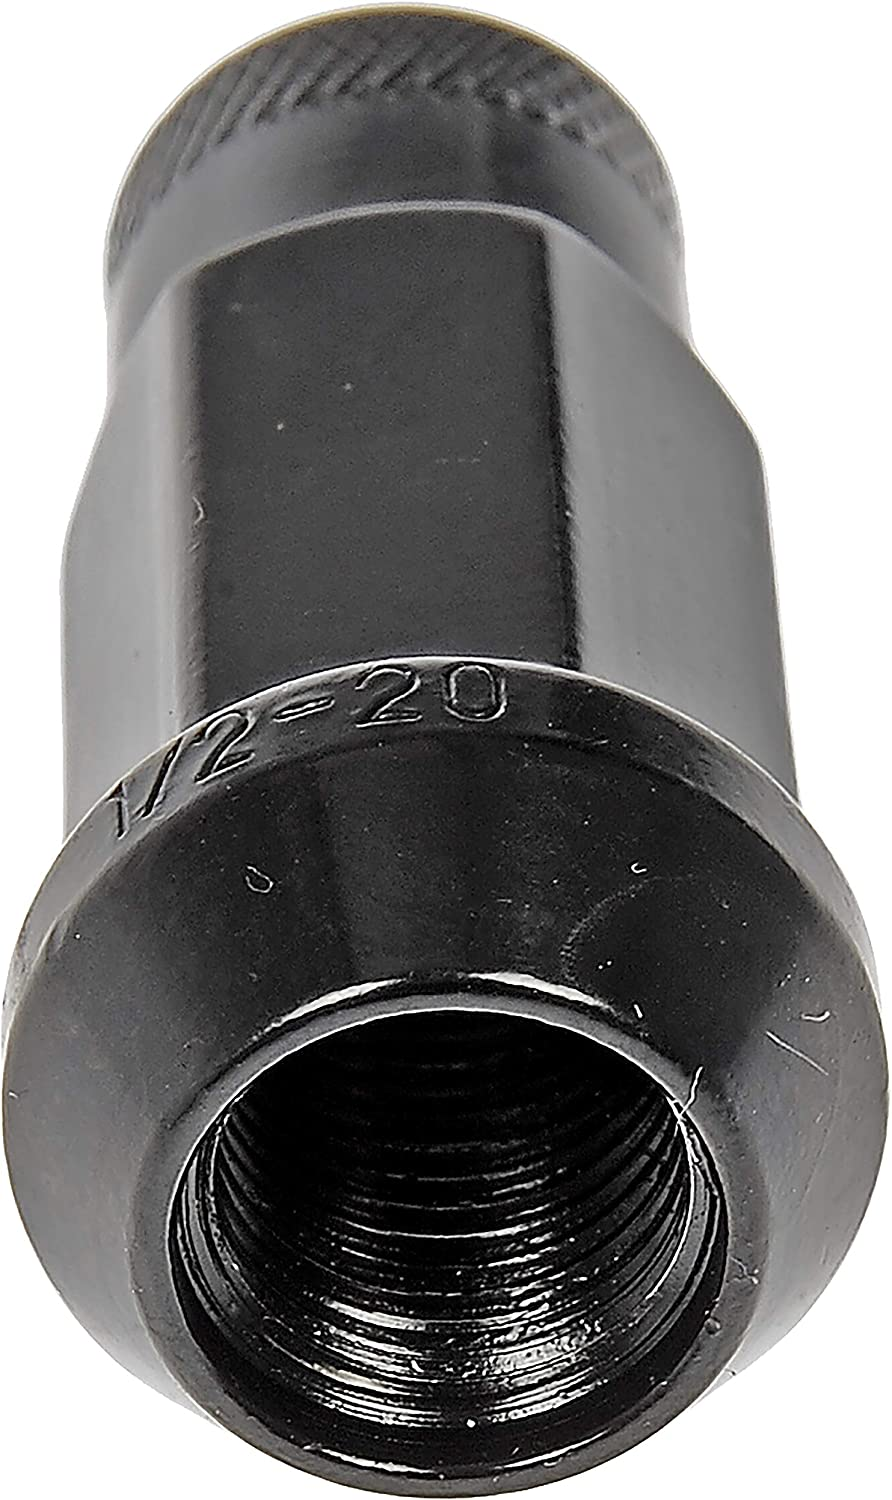 Dorman 713-285A Black Open End Knurled Wheel Nuts for Select Models